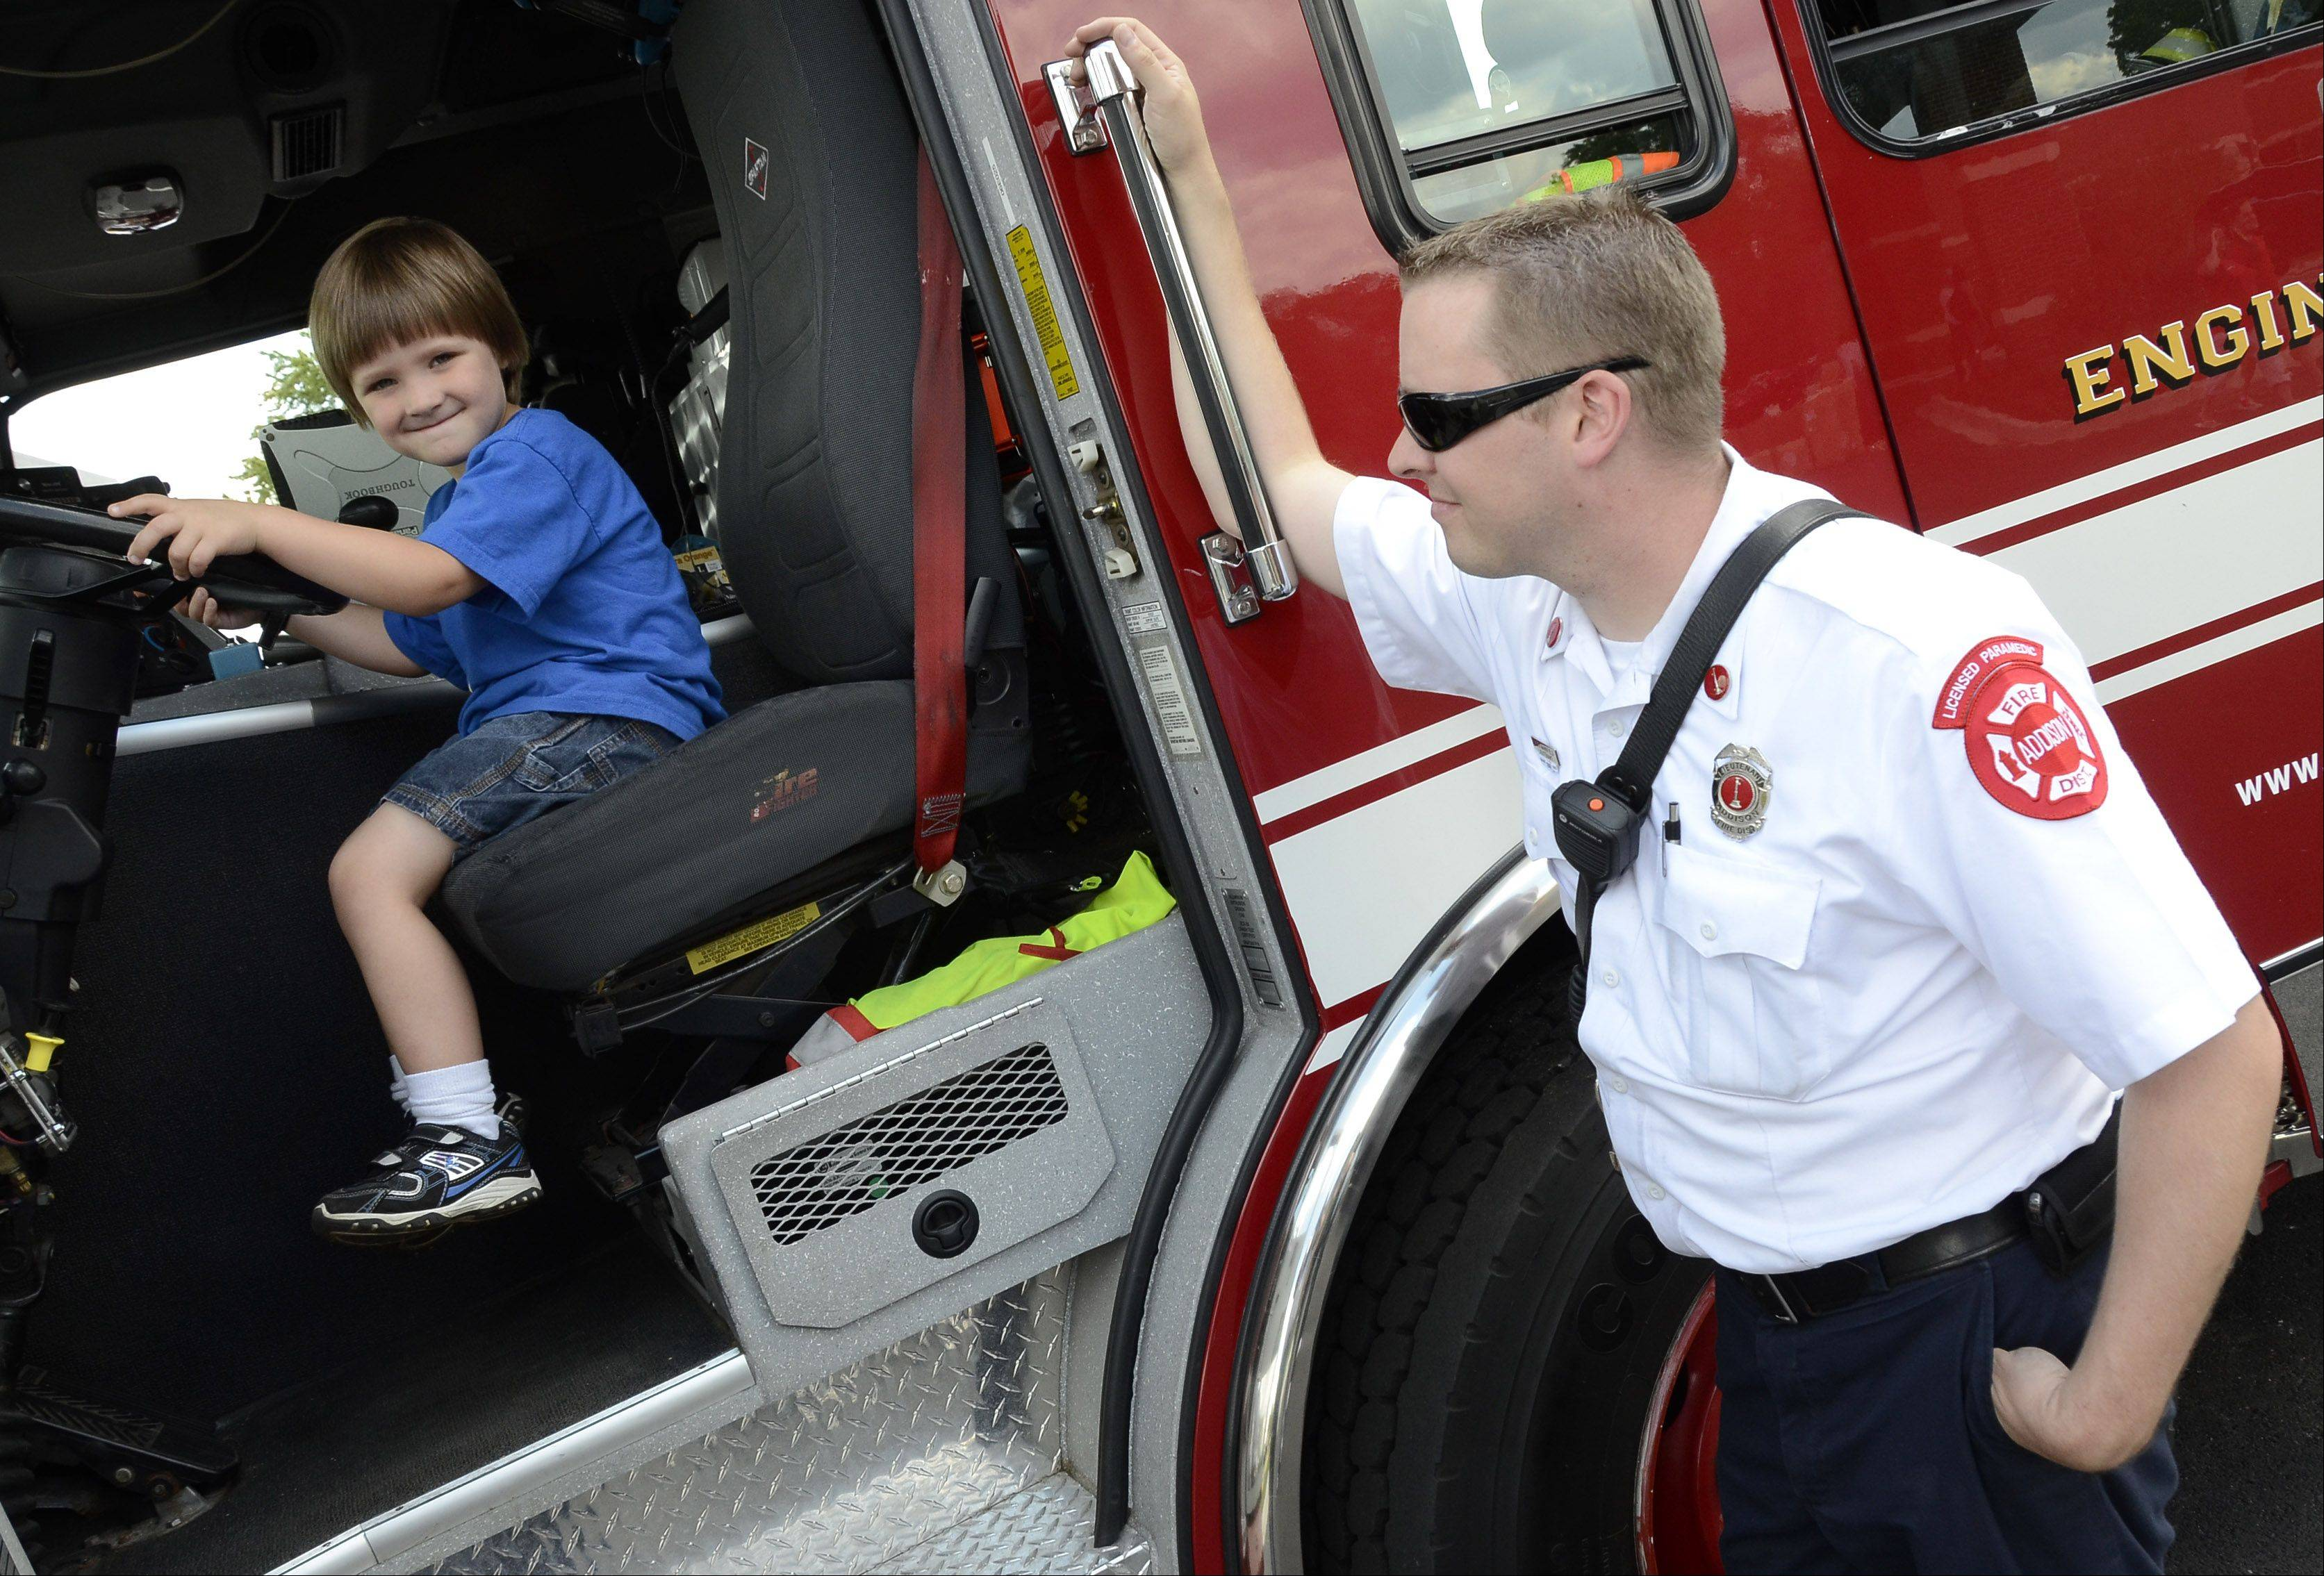 Christopher Kaul, 4, of Elmhurst, gets to steer a fire truck Sunday at the opening of the Elmhurst Memorial Hospital Addison Health Center. Looking on is Addison Fire Department Lt. firefighter /paramedic Chris Mansfield.